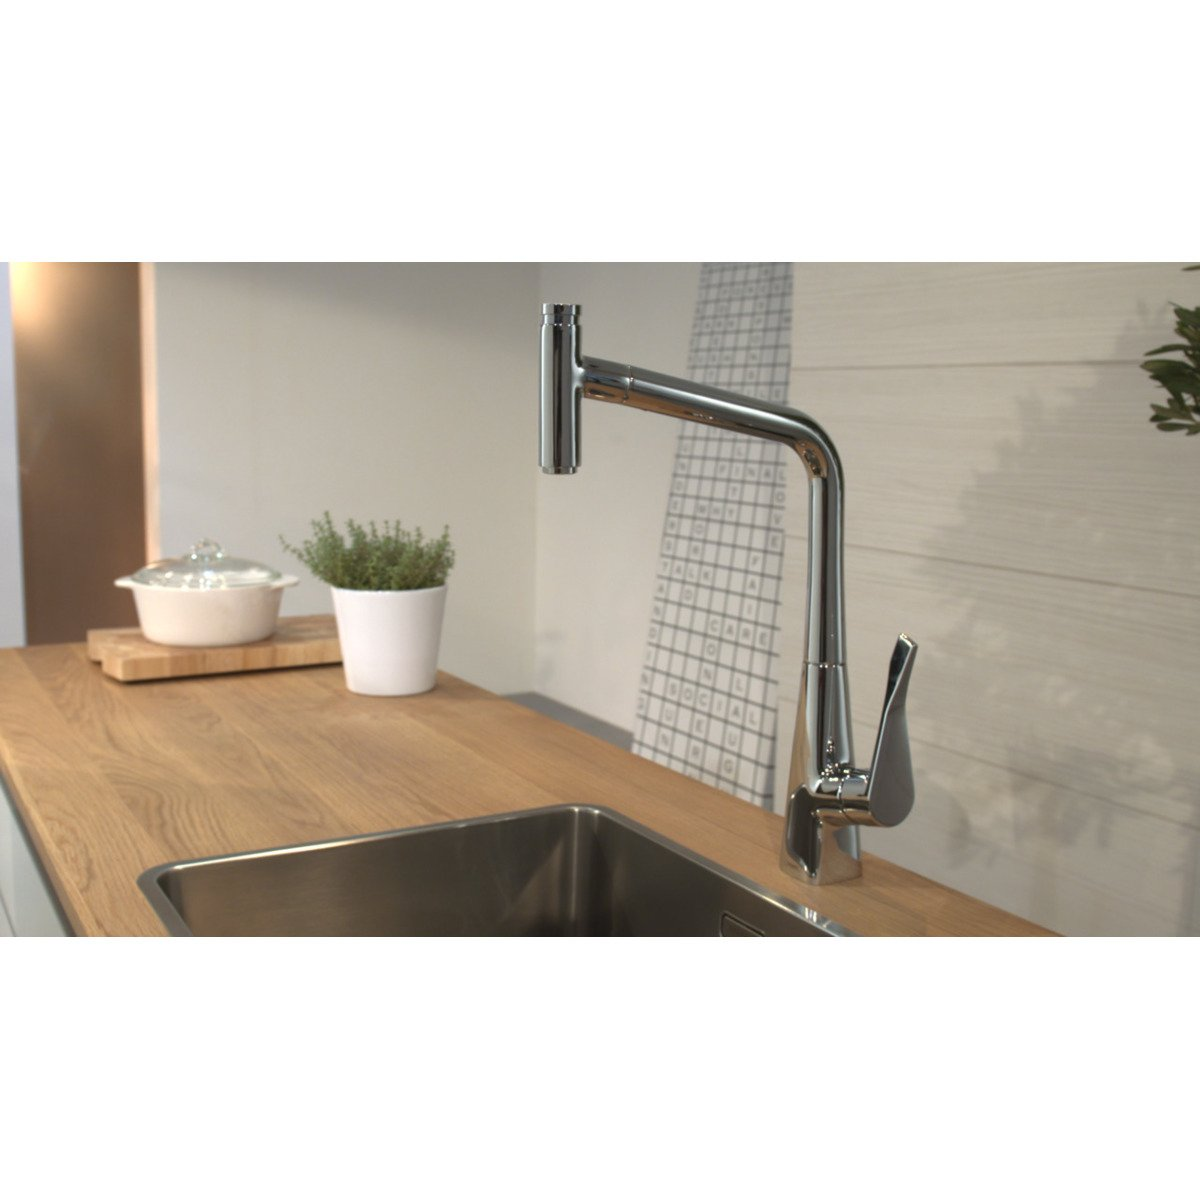 hansgrohe metris robinet de cuisine avec douchette extractible look inox 14820800. Black Bedroom Furniture Sets. Home Design Ideas